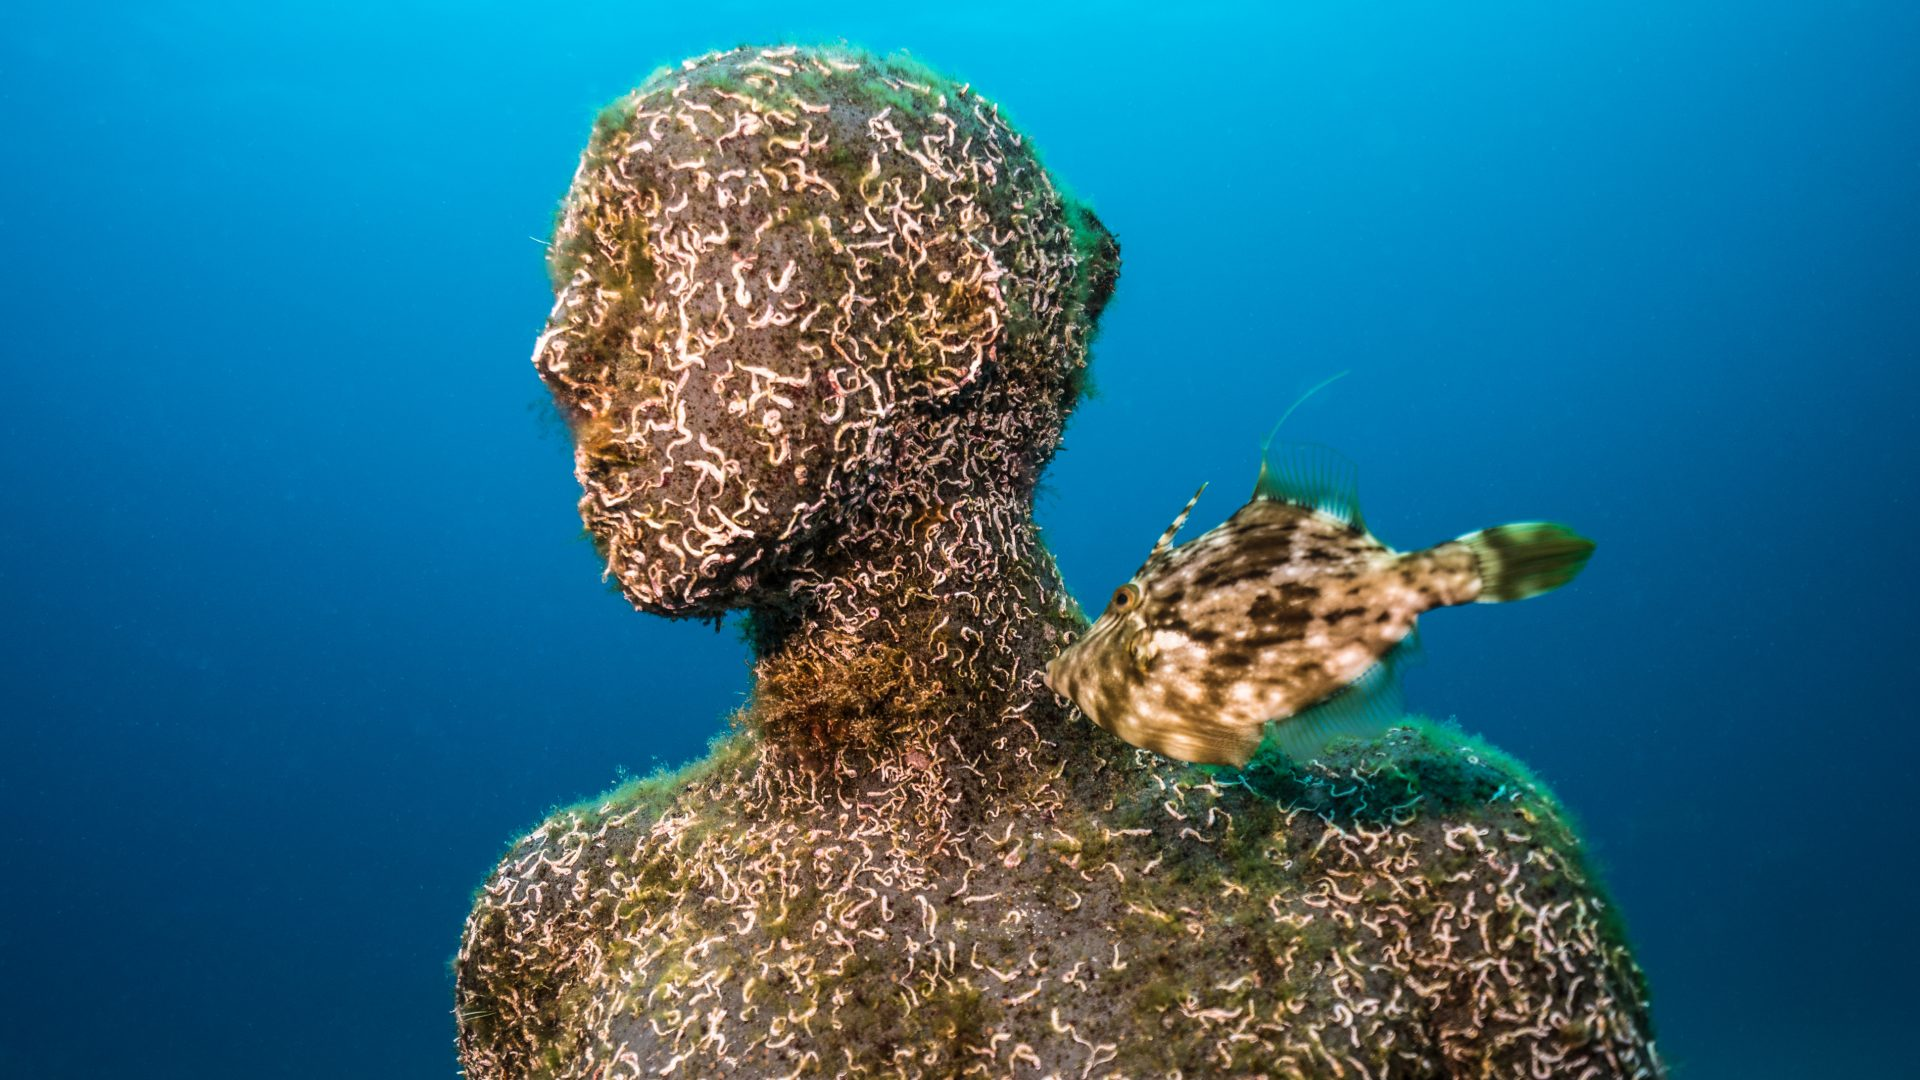 A fish swims up to one of Jason deCaire Taylor's underwater sculptures that form part of the 'Life at Museo Atlantico' exhibition.